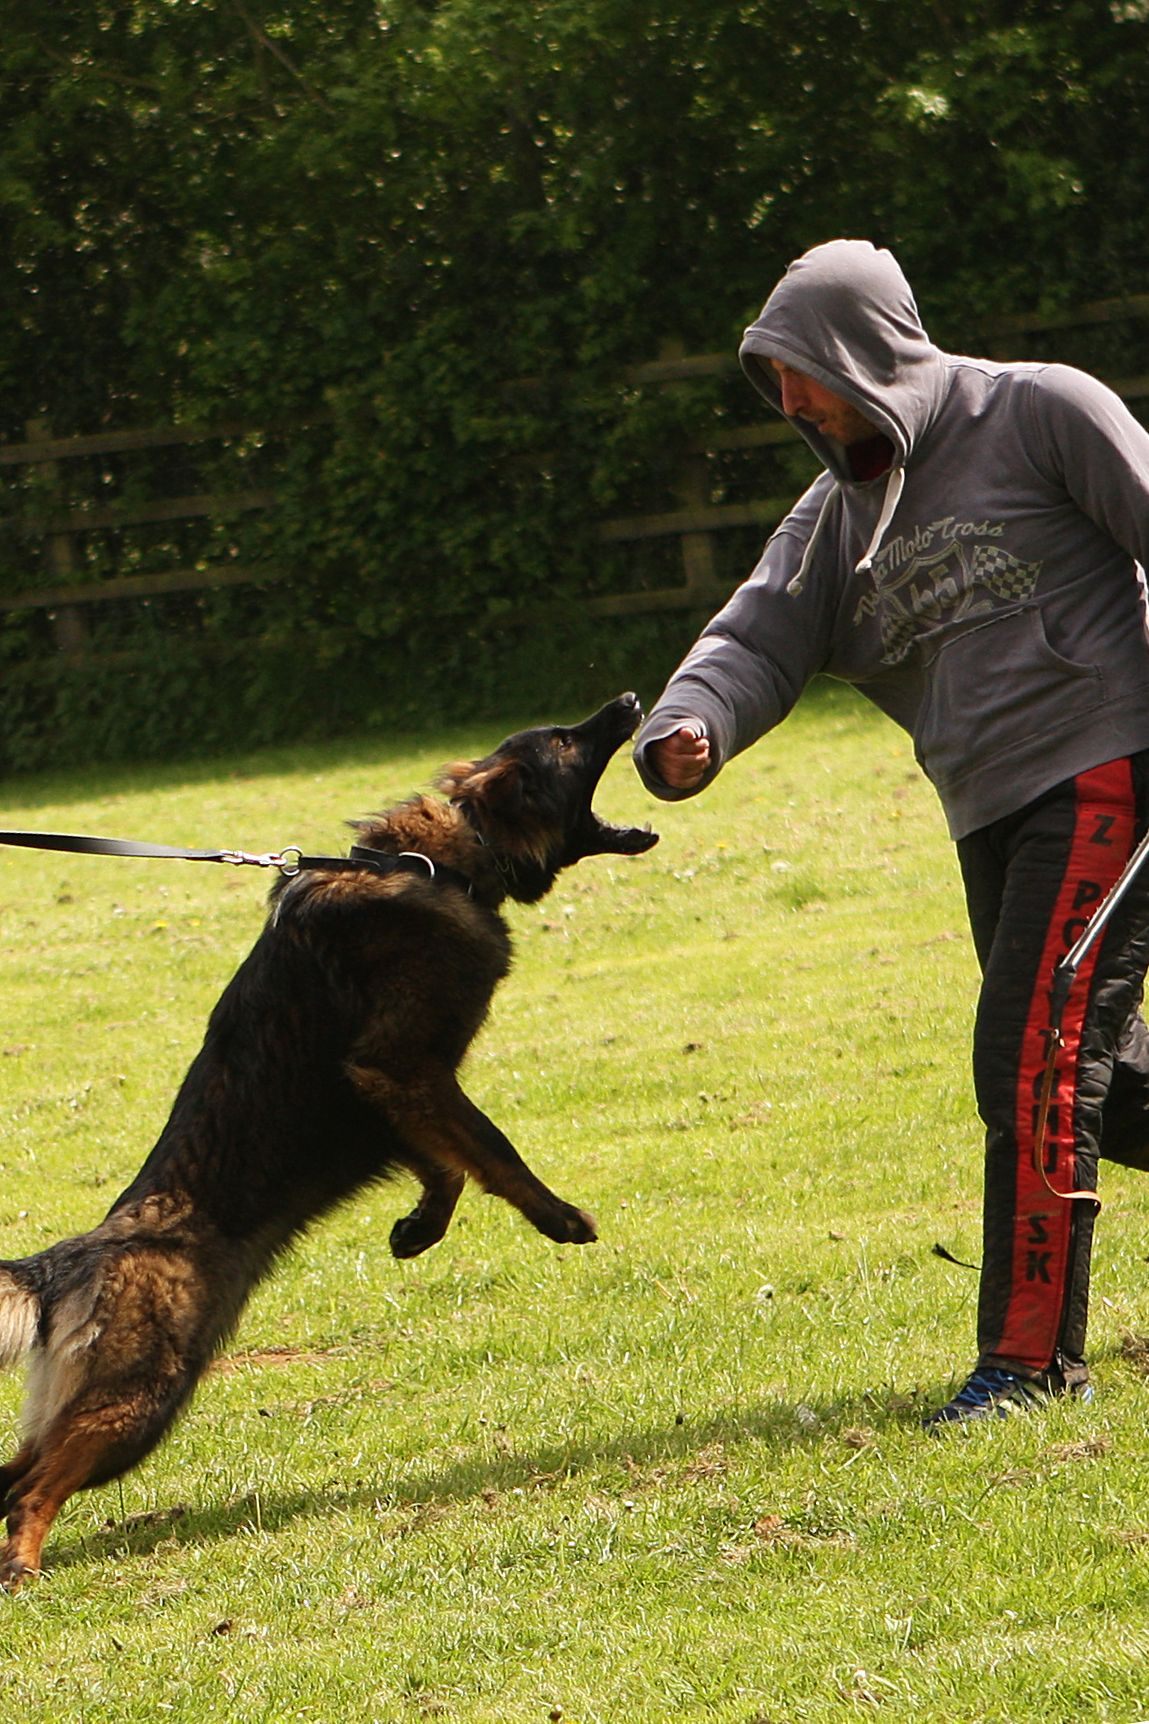 Protection Dog Training Check Out The Image By Visiting The